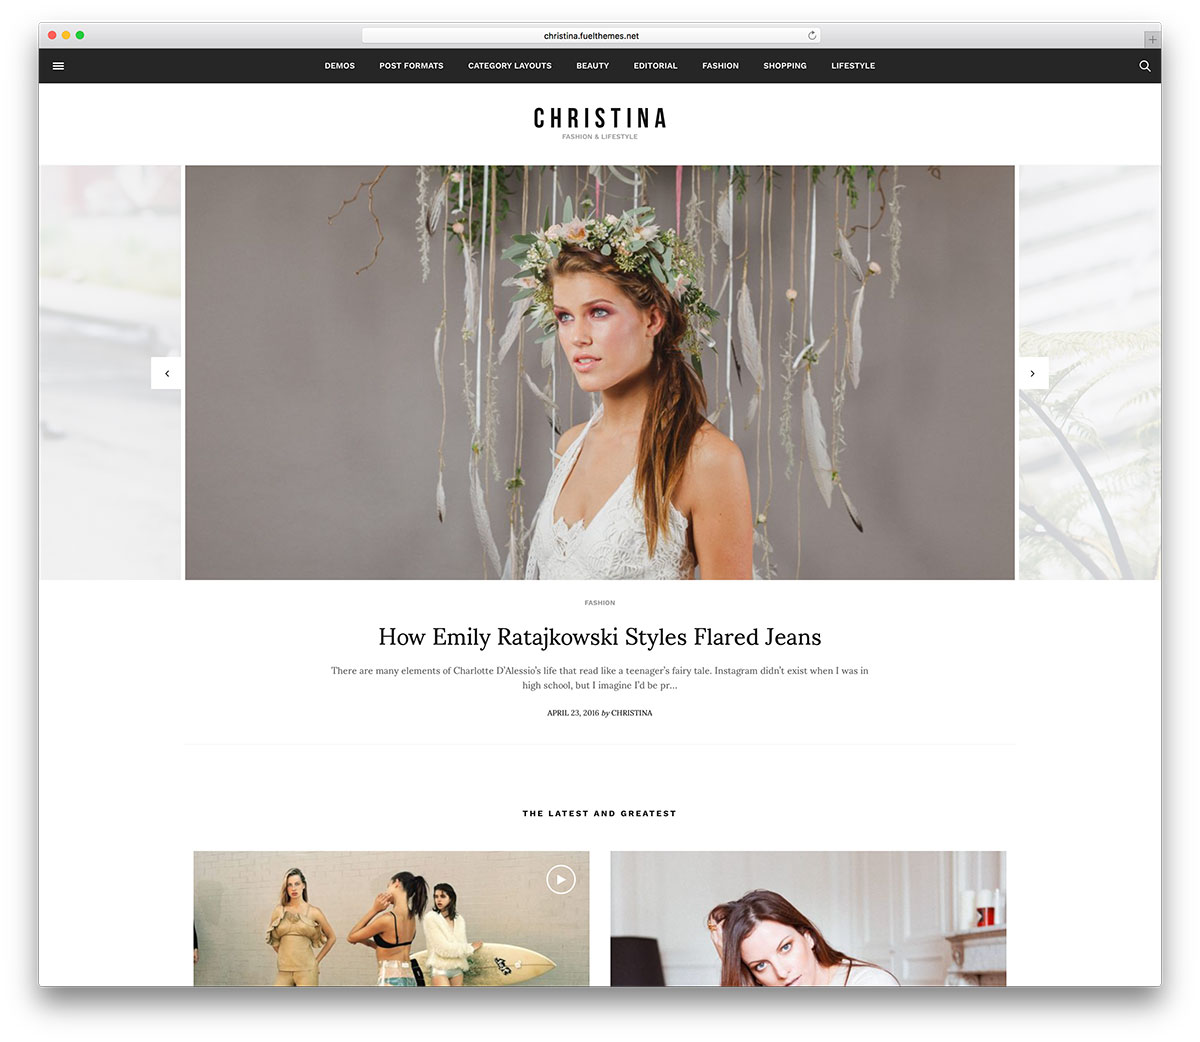 christina-minimal-fashion-blog-wordpress-theme